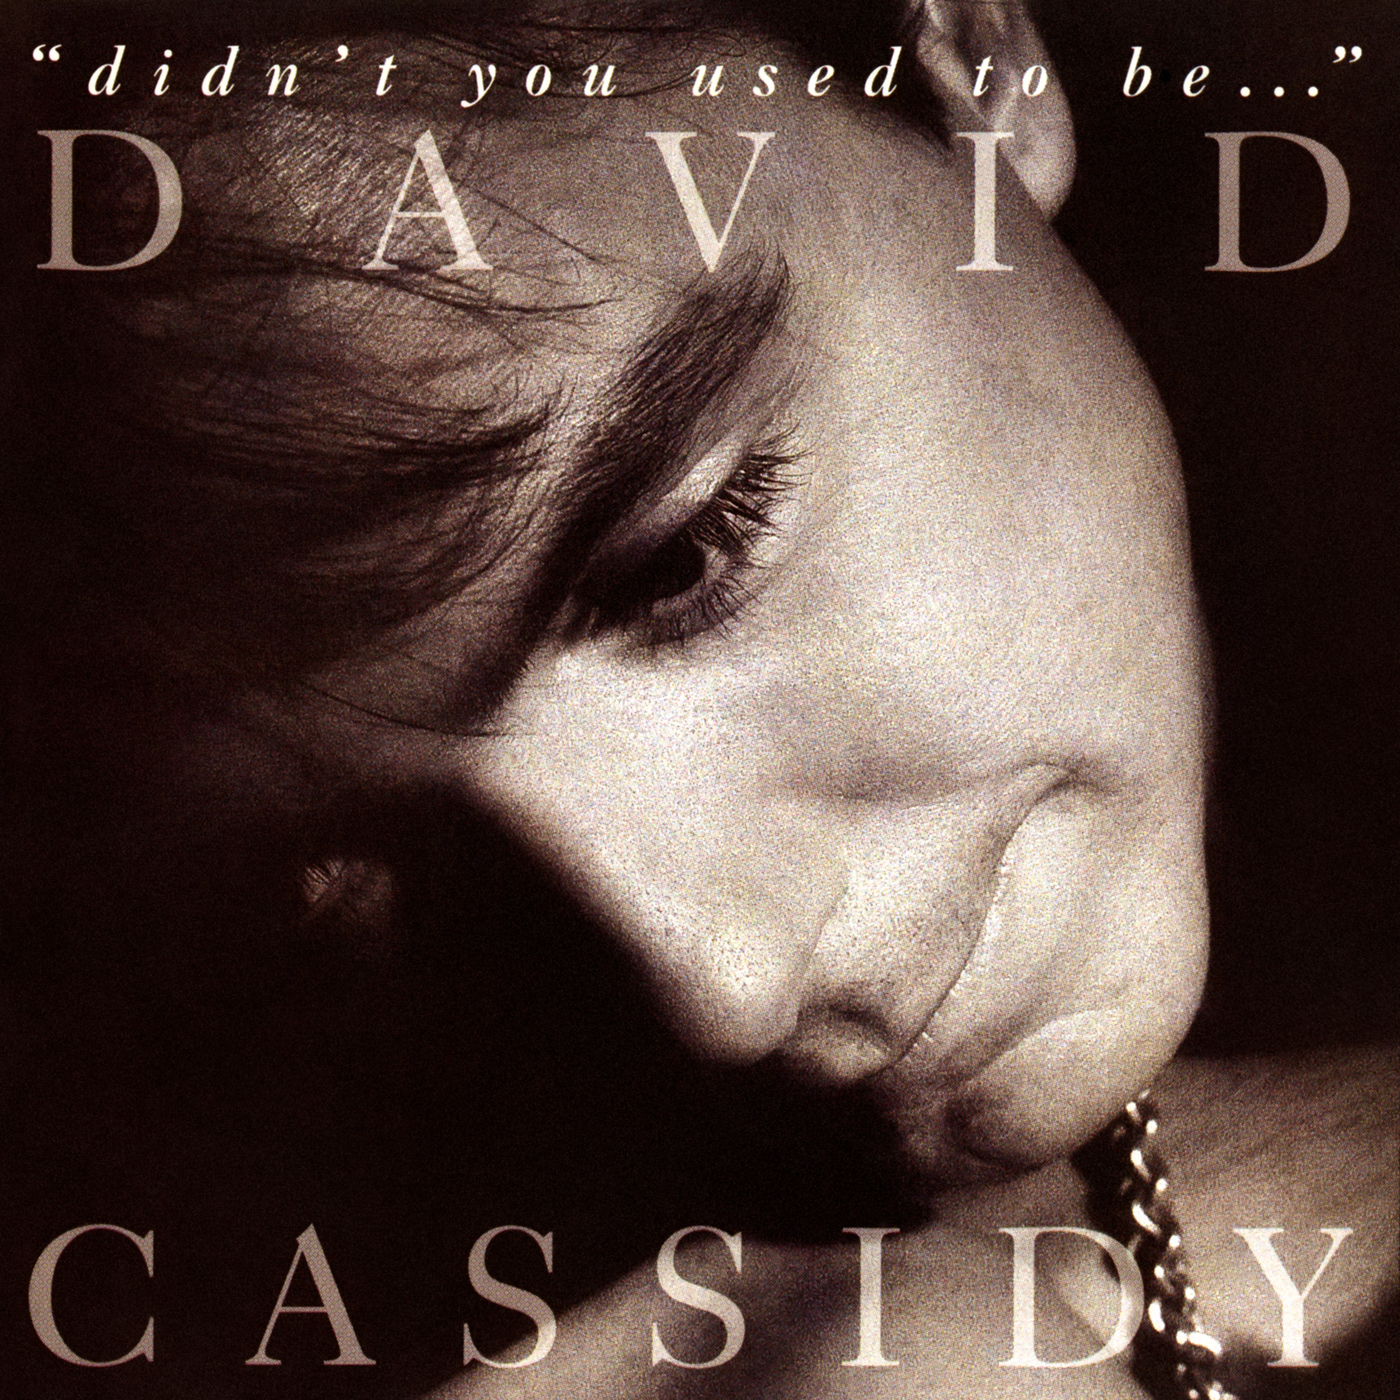 Didn't You Used To Be... - David Cassidy